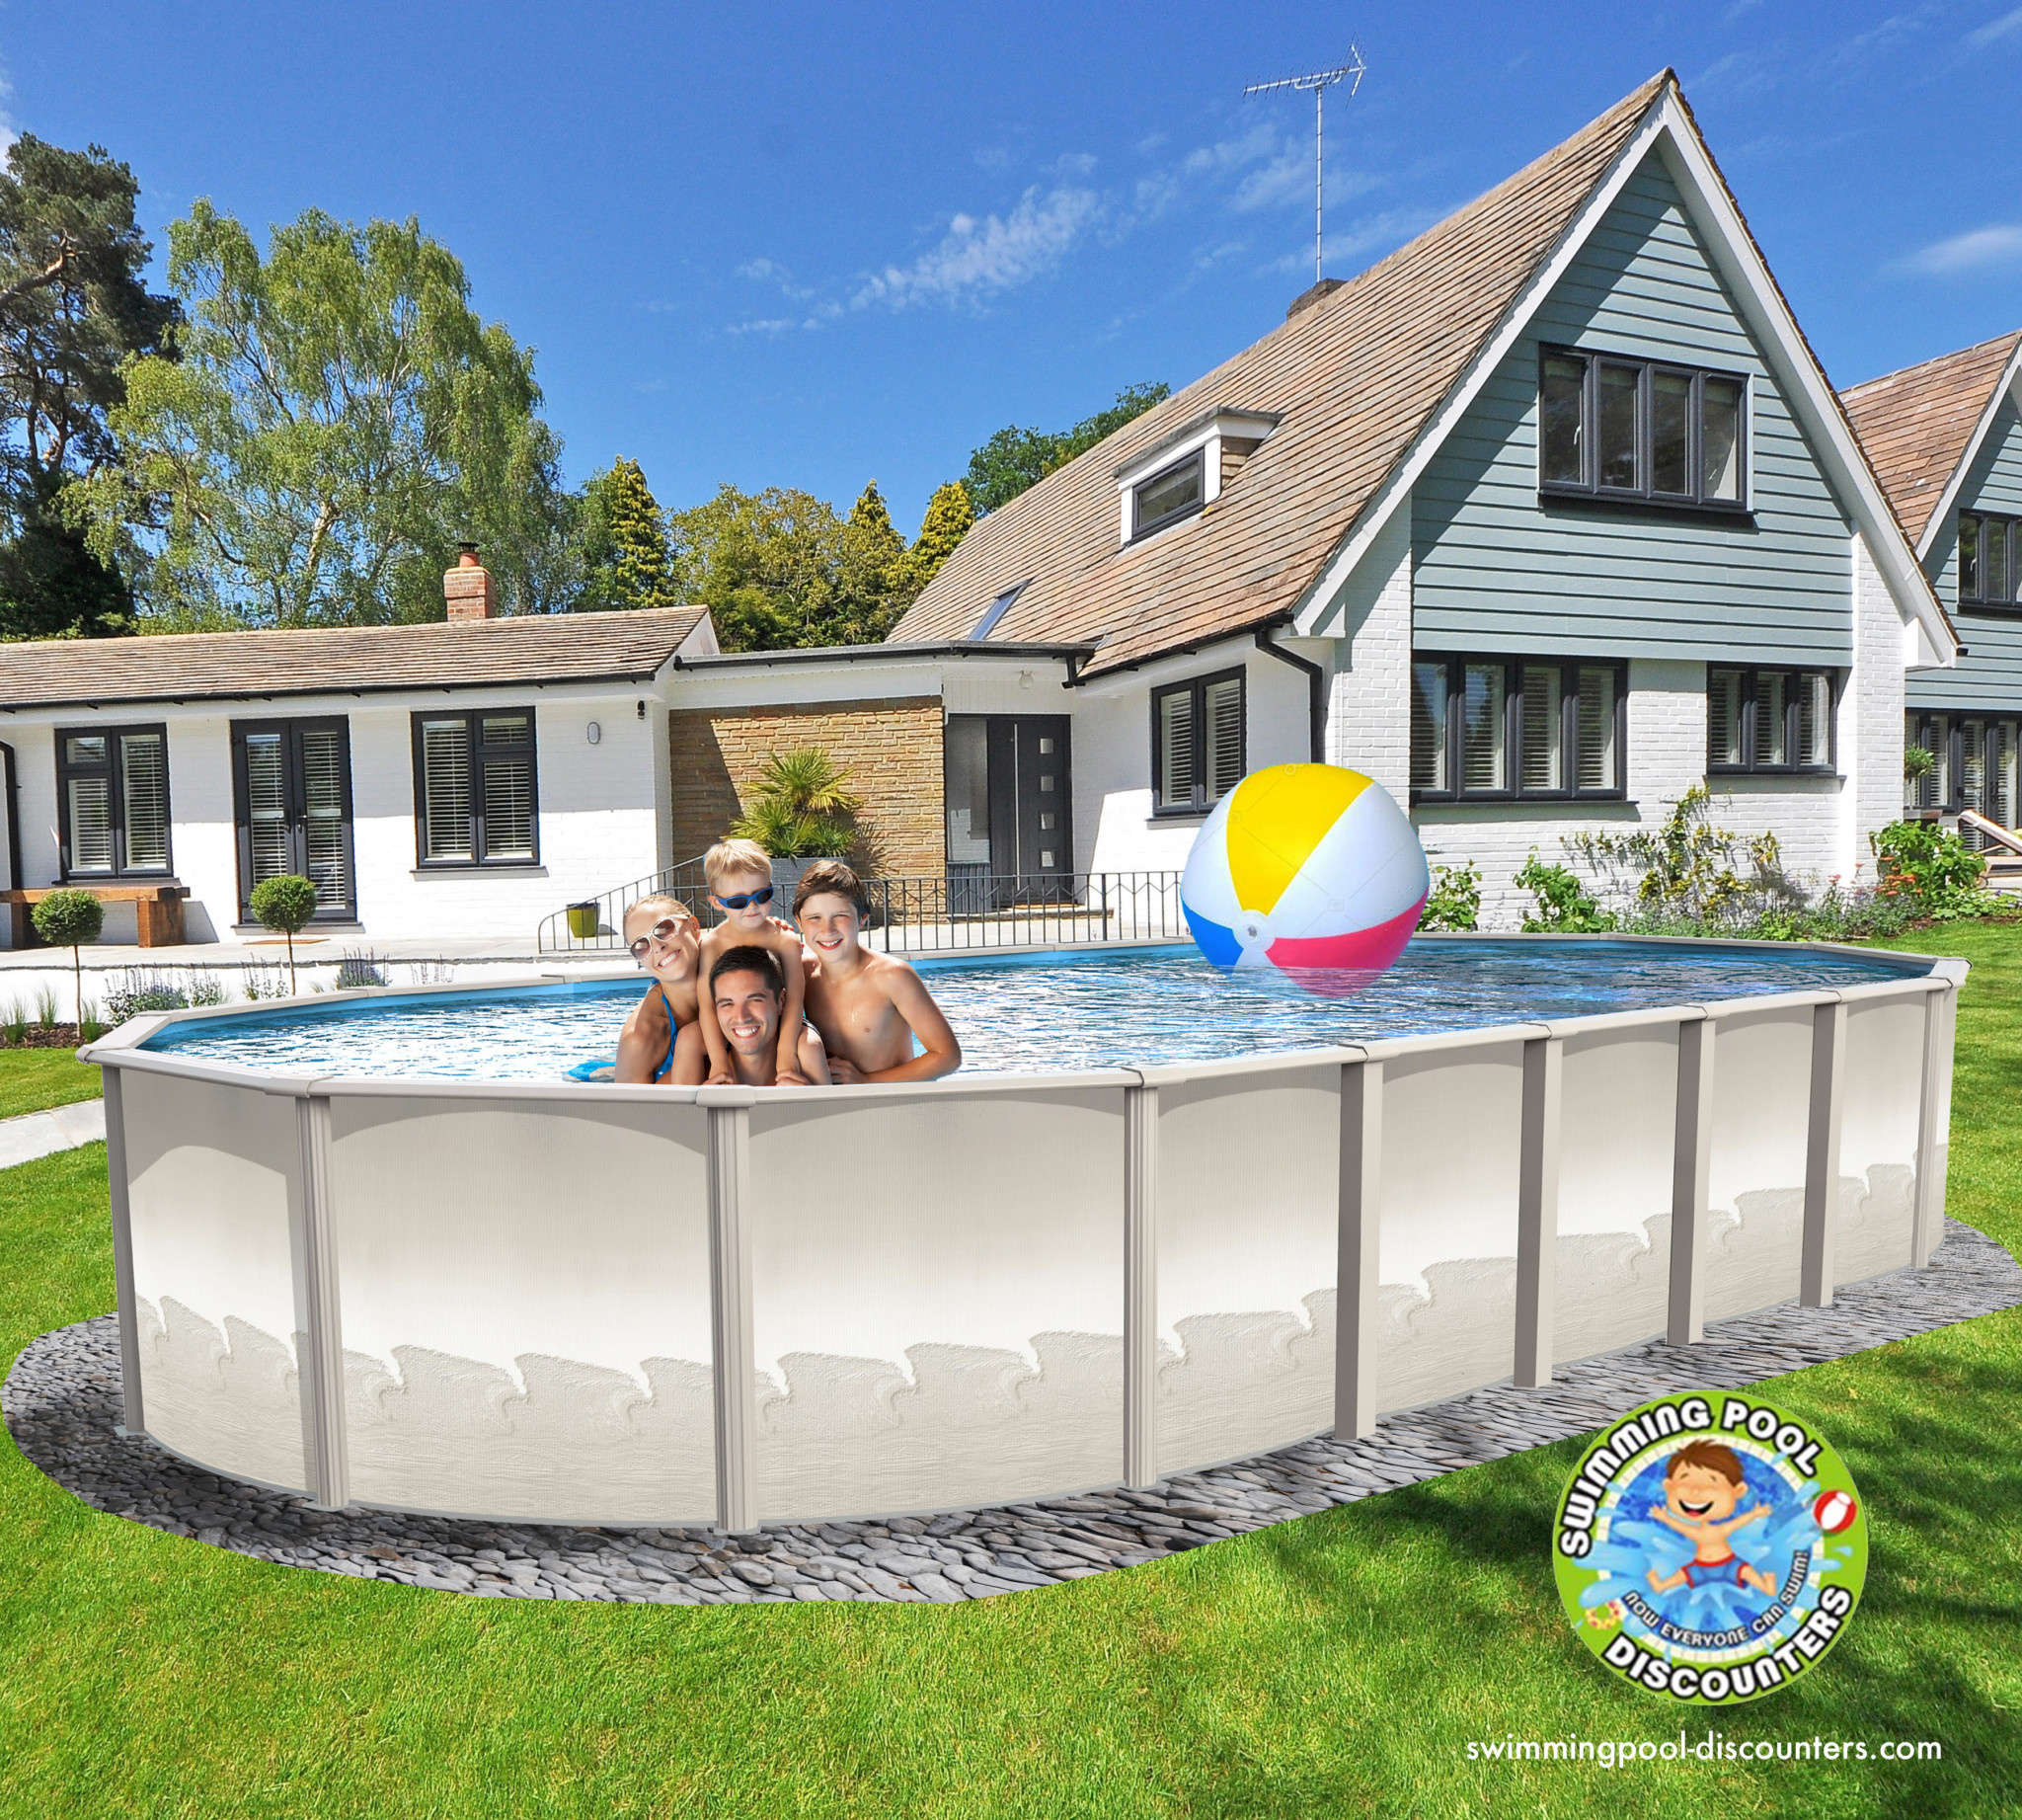 15 X26 X54 No Brace Resin Guard 7in Closeout With Free Goods Swimming Pool Discounters